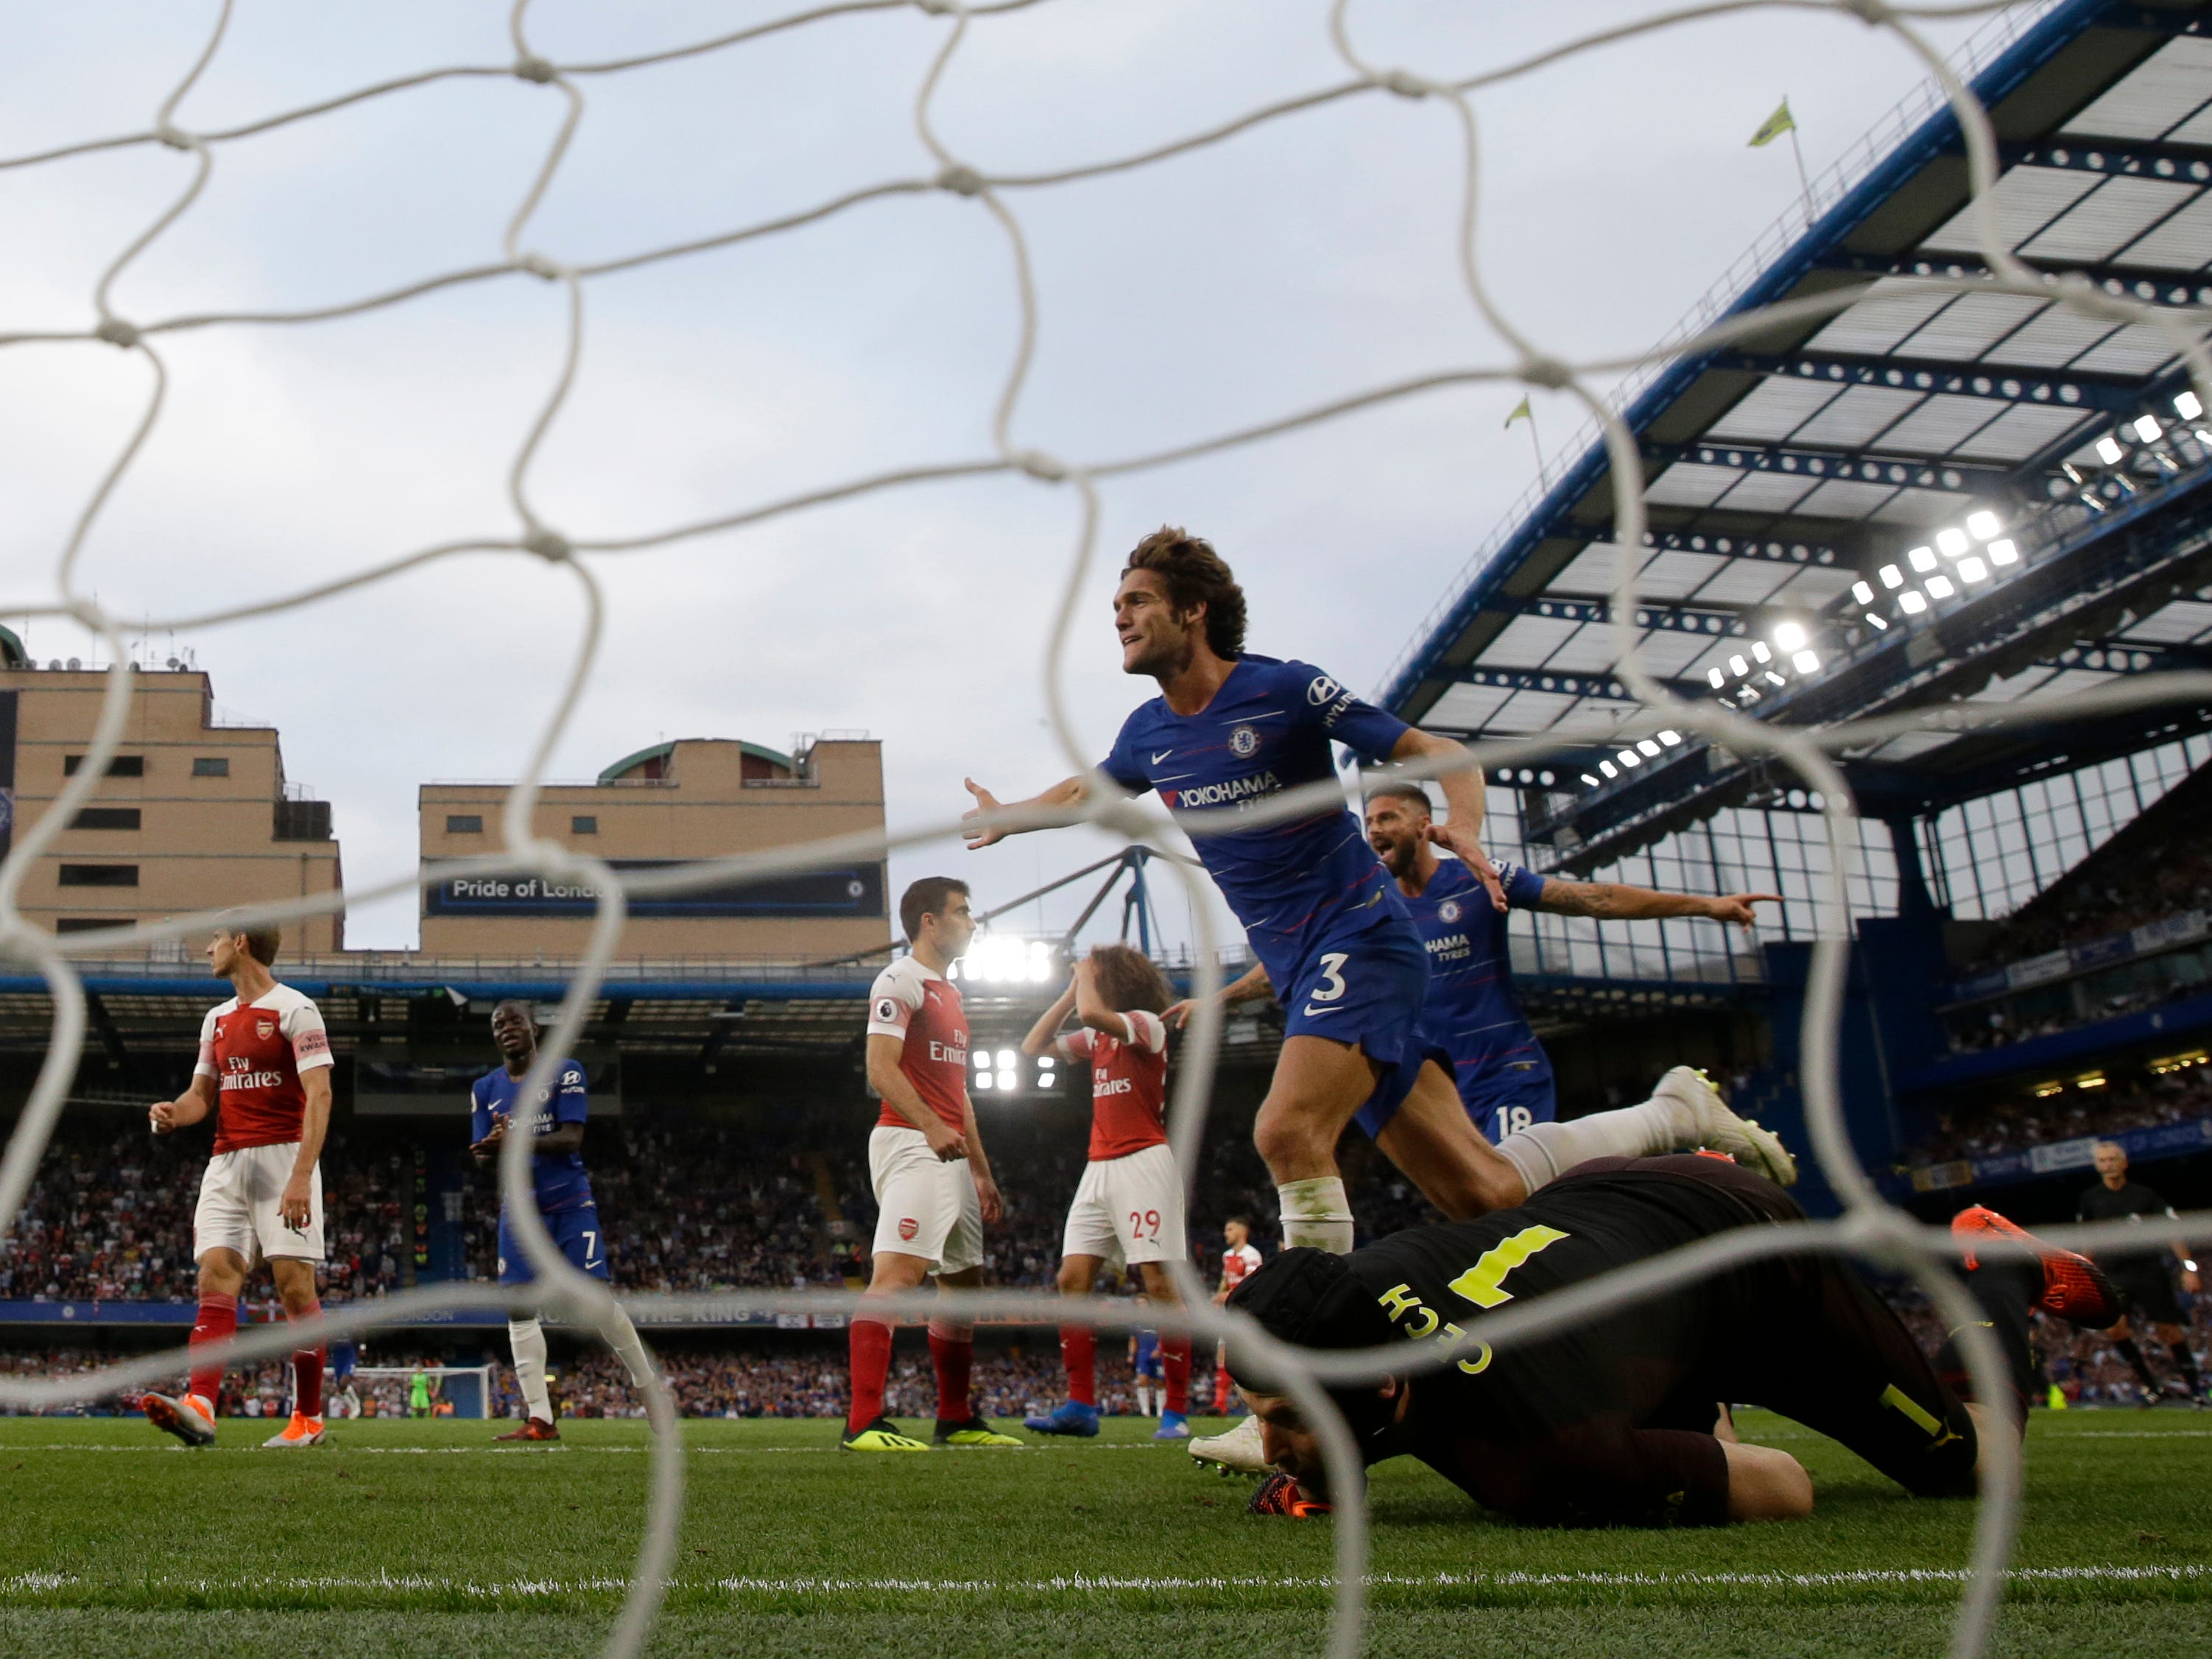 Chelsea's Marcos Alonso celebrates after scoring the go-ahead goal in a 3-2 win over Arsenal at Stamford Bridge.